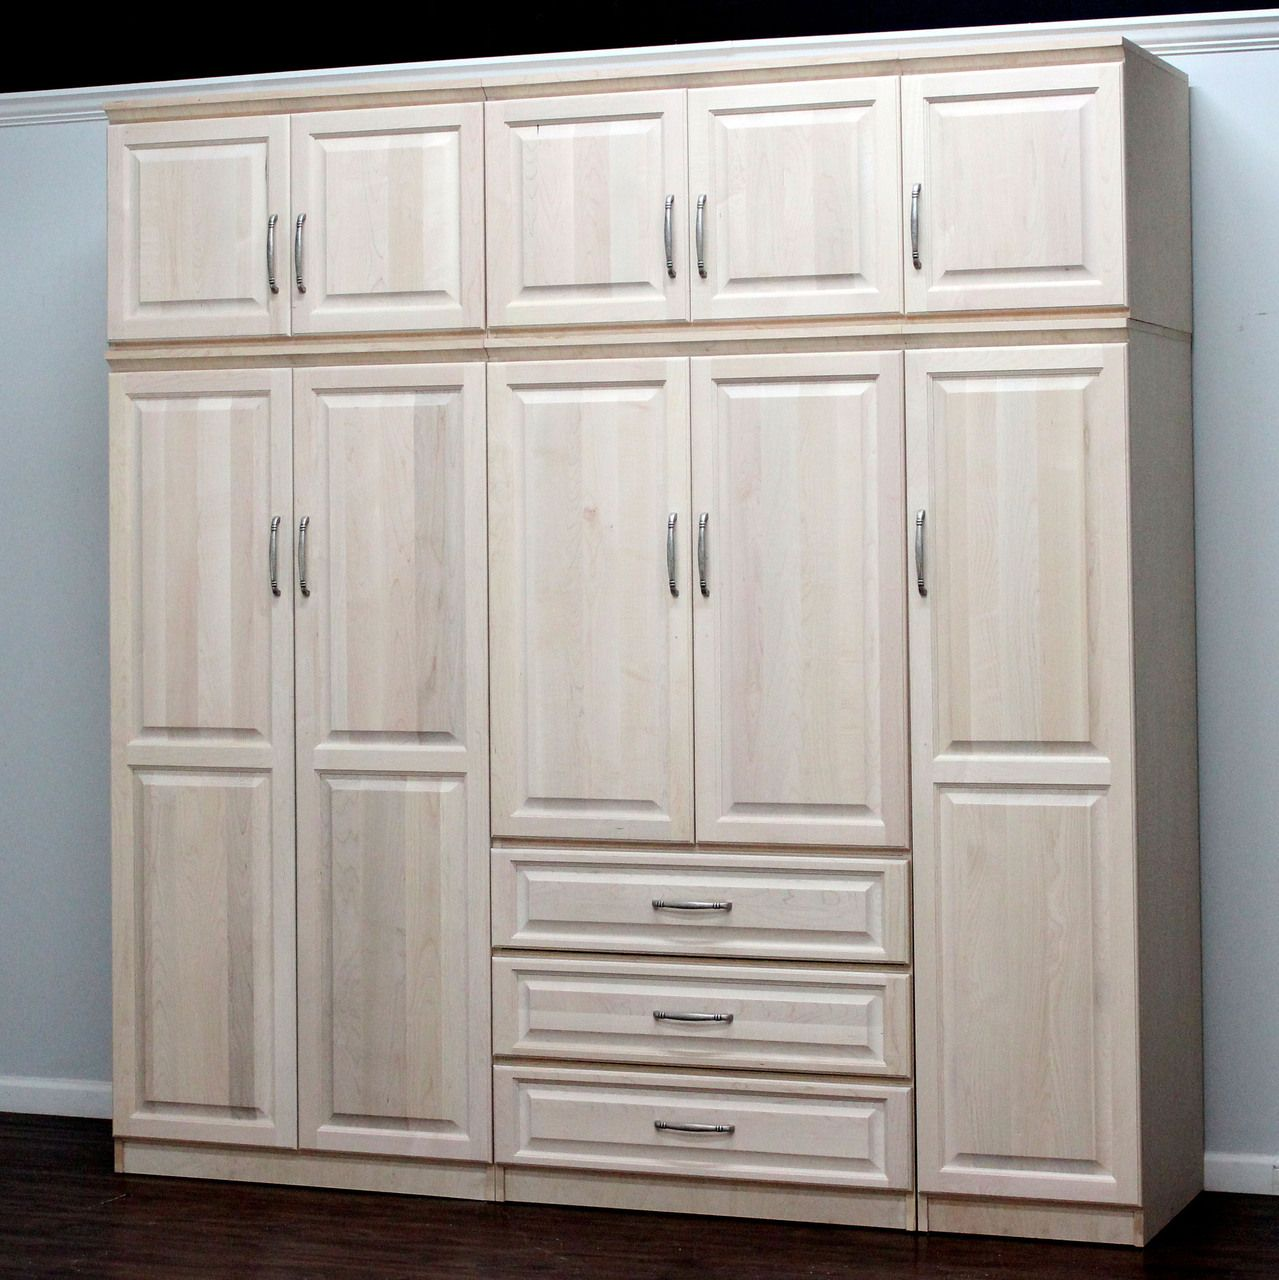 raised panel wall closet system 6 piece set raised panel panel gothic cabinet craft quality wood furniture since visit one of our 20 locations or purchase online today